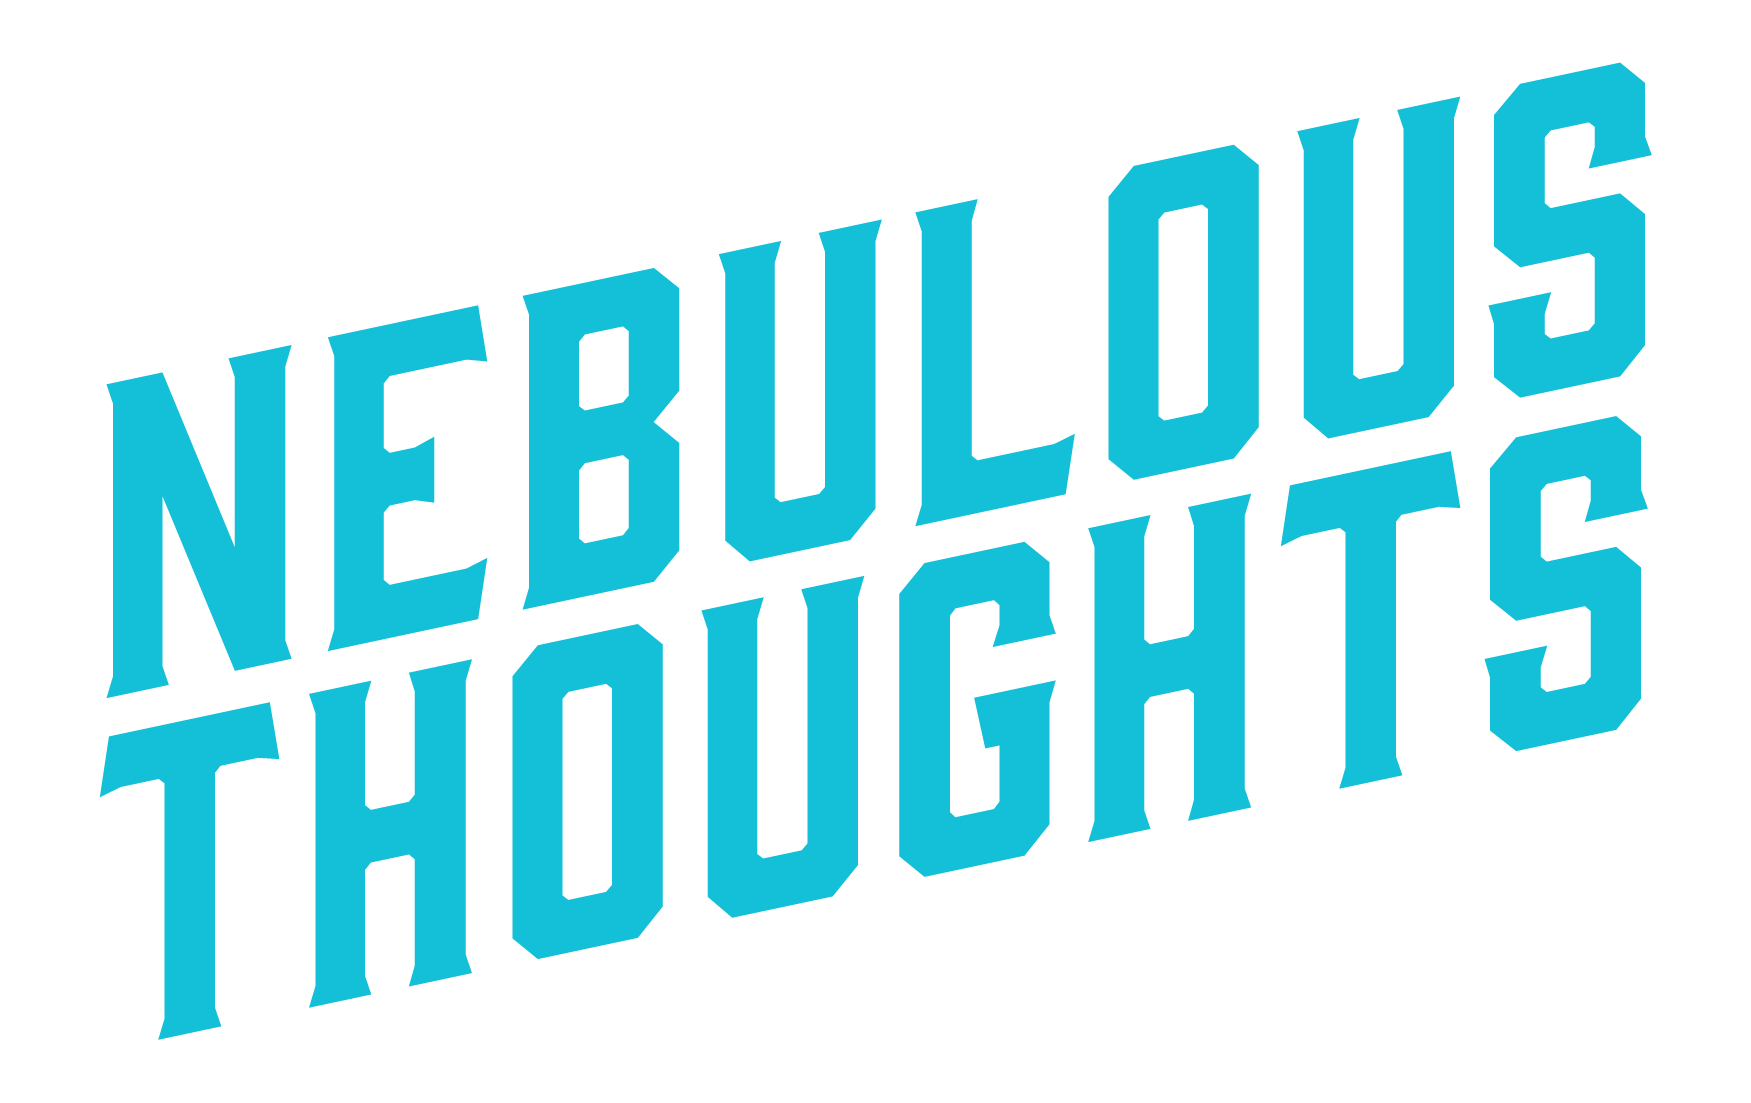 Nebulous Thoughts